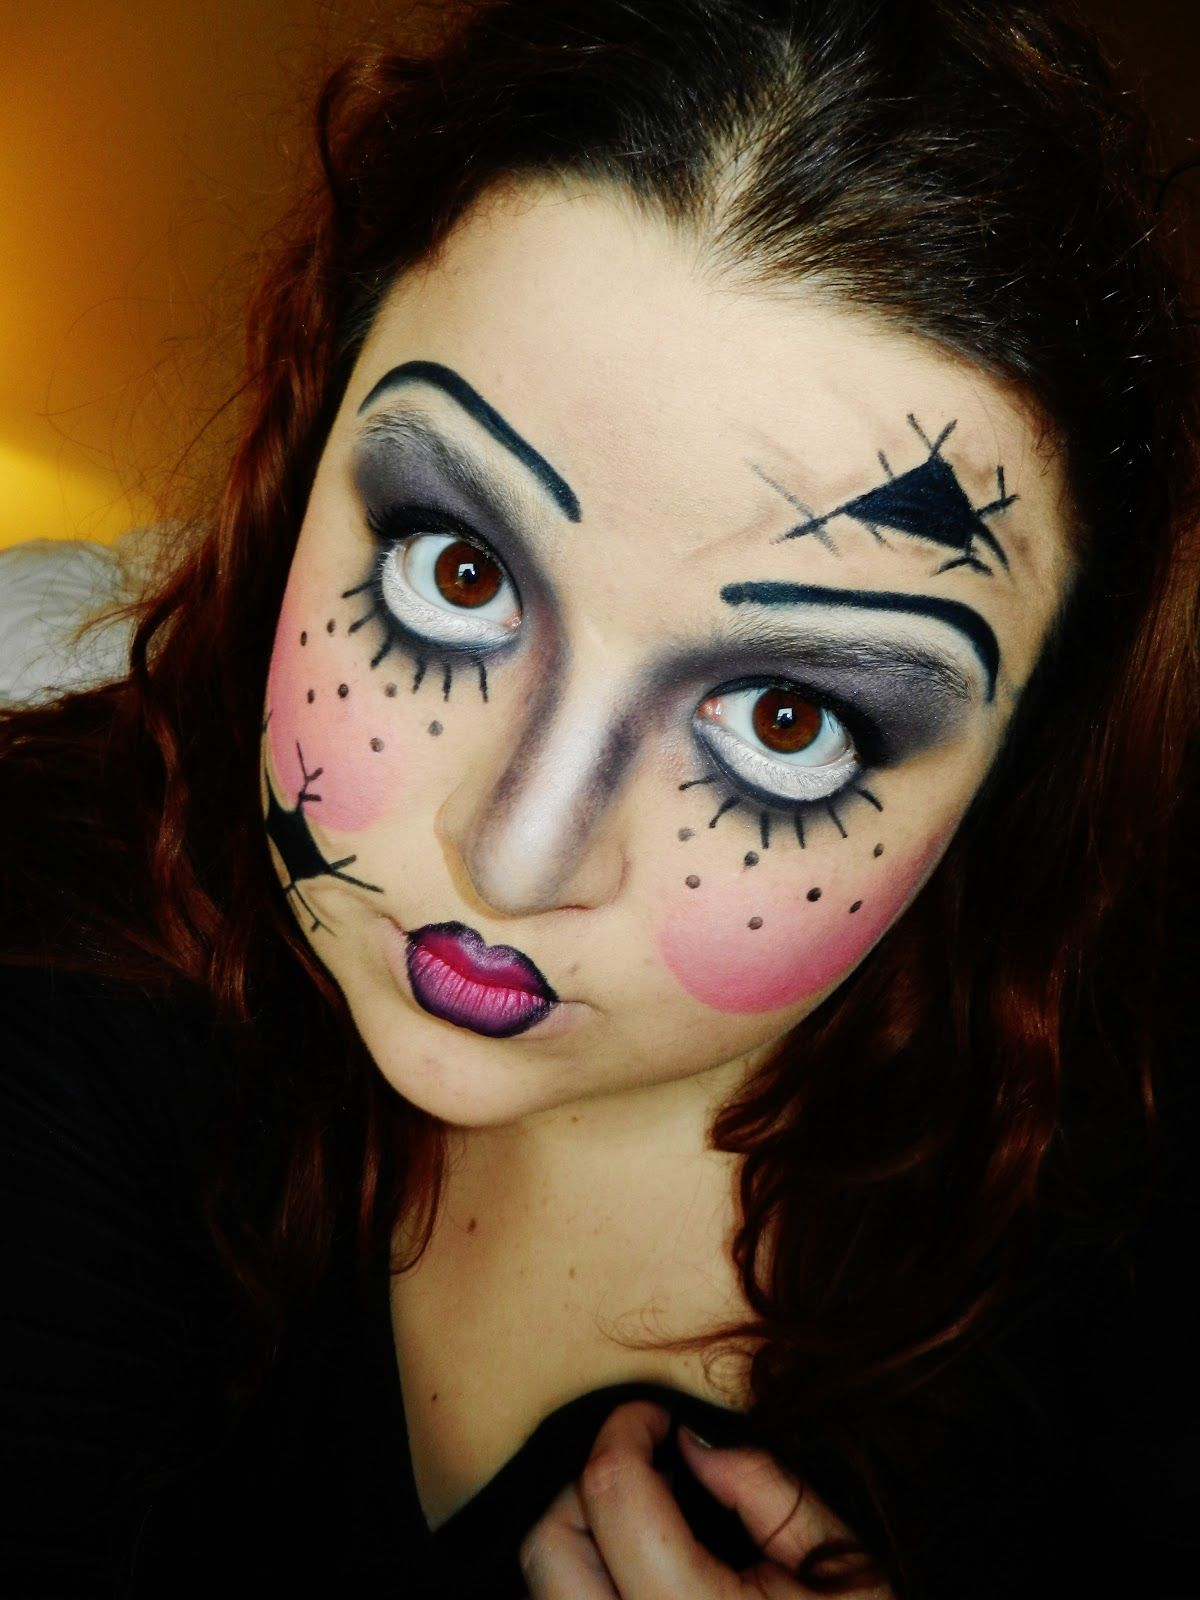 Broken doll makeup tutorial google search doll costume broken doll makeup tutorial google search baditri Image collections